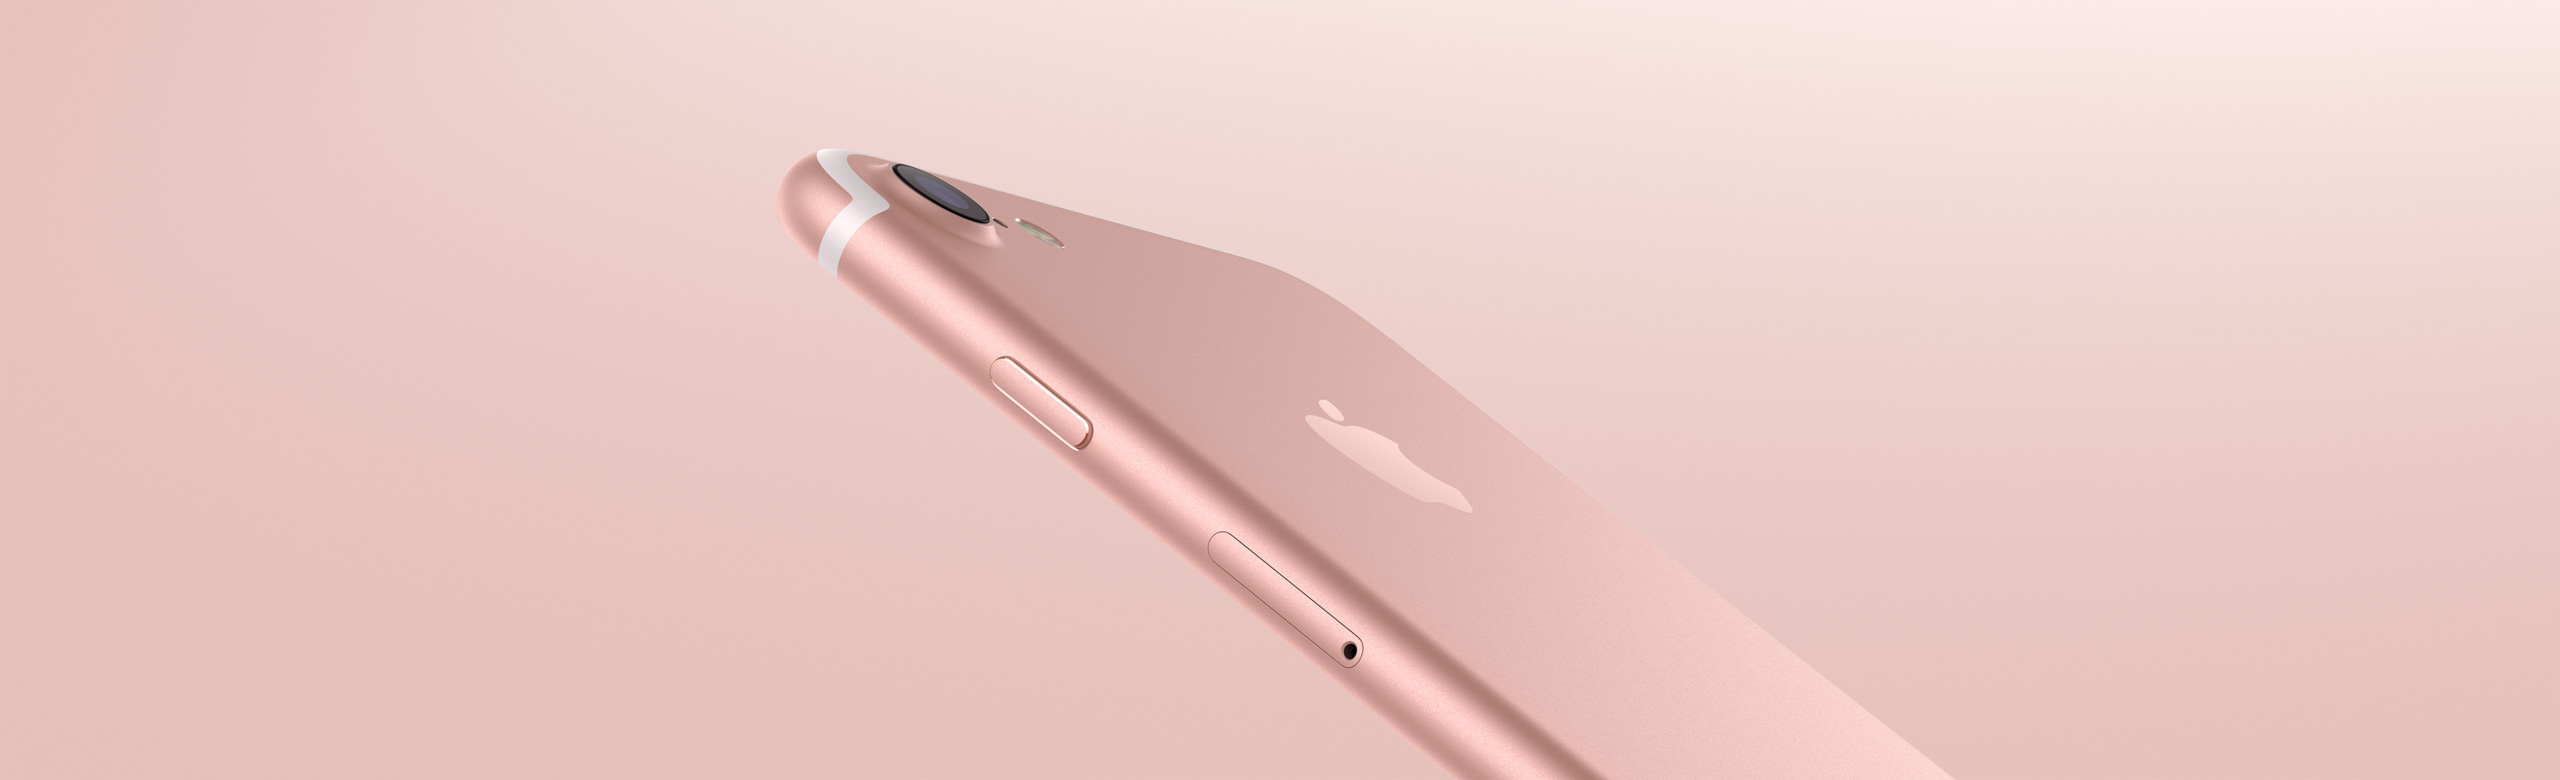 http://images.apple.com/v/iphone-7/a/images/overview/design_gallery_rose_large.jpg